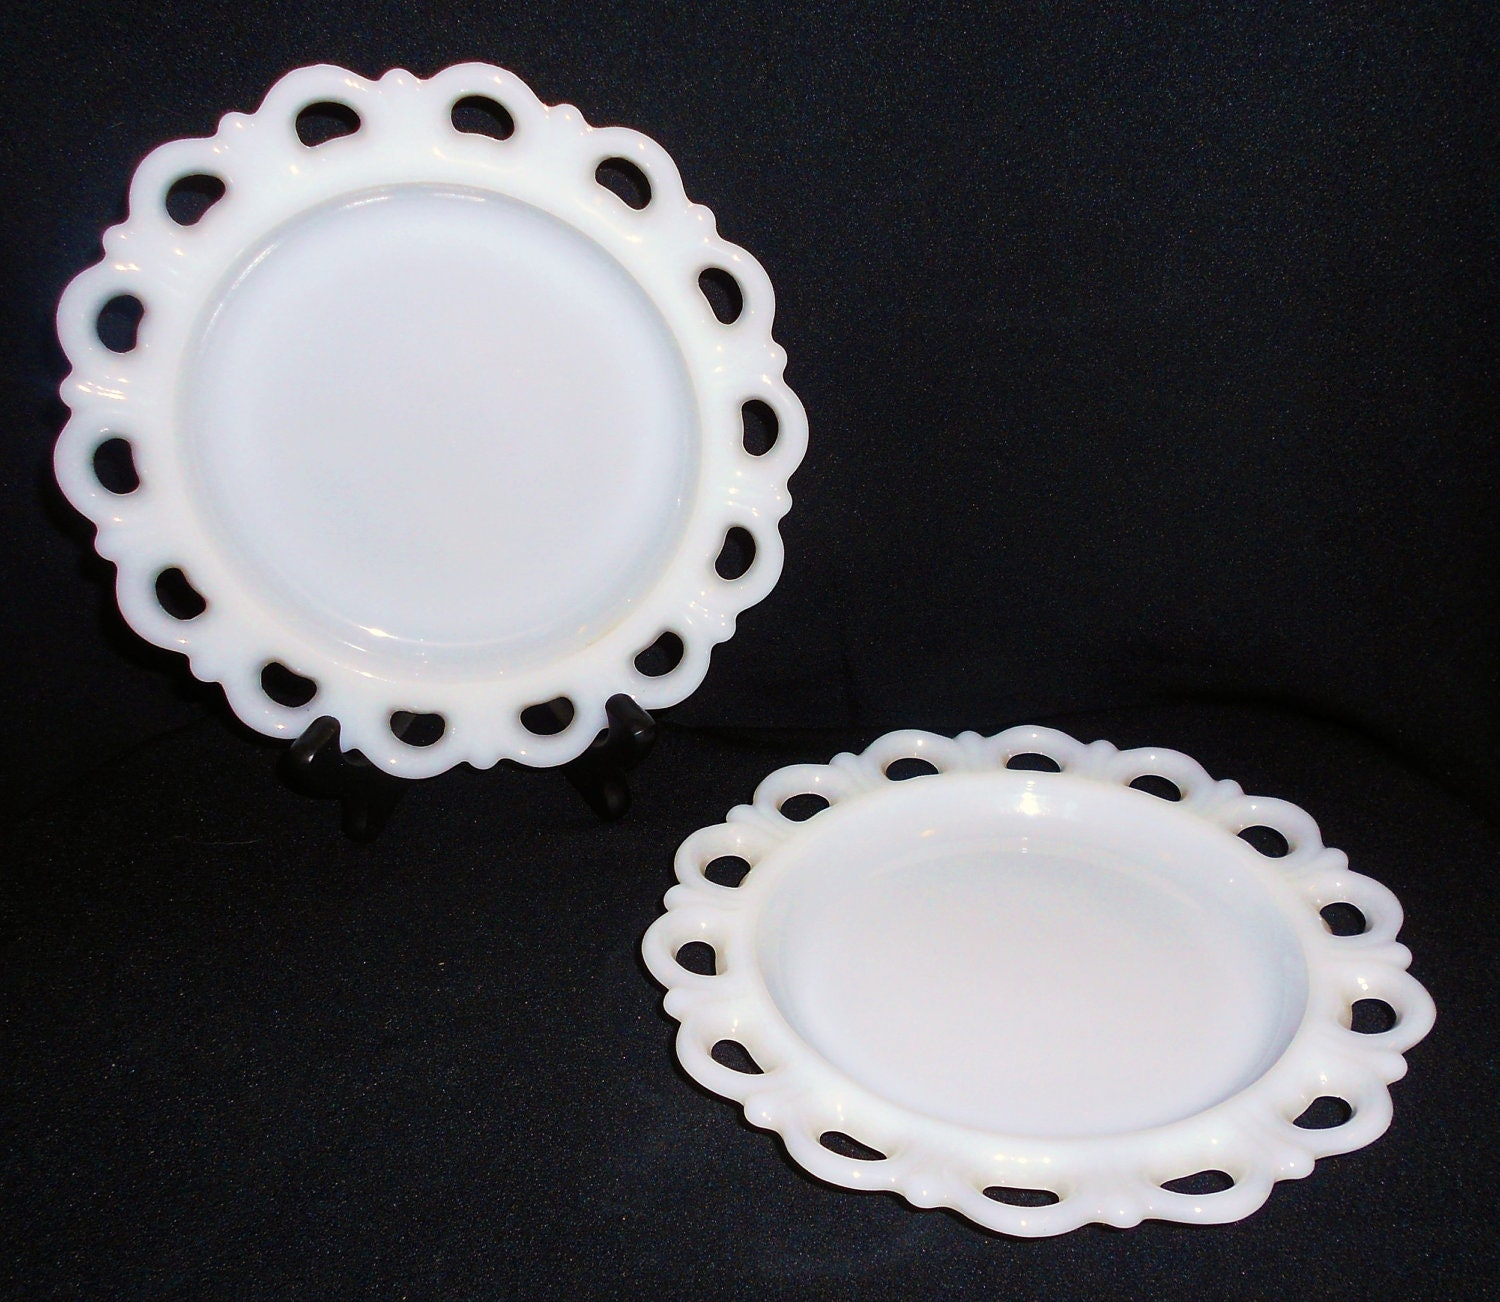 2 Vintage White Milk Glass Plates With Reticulated Lace Edge